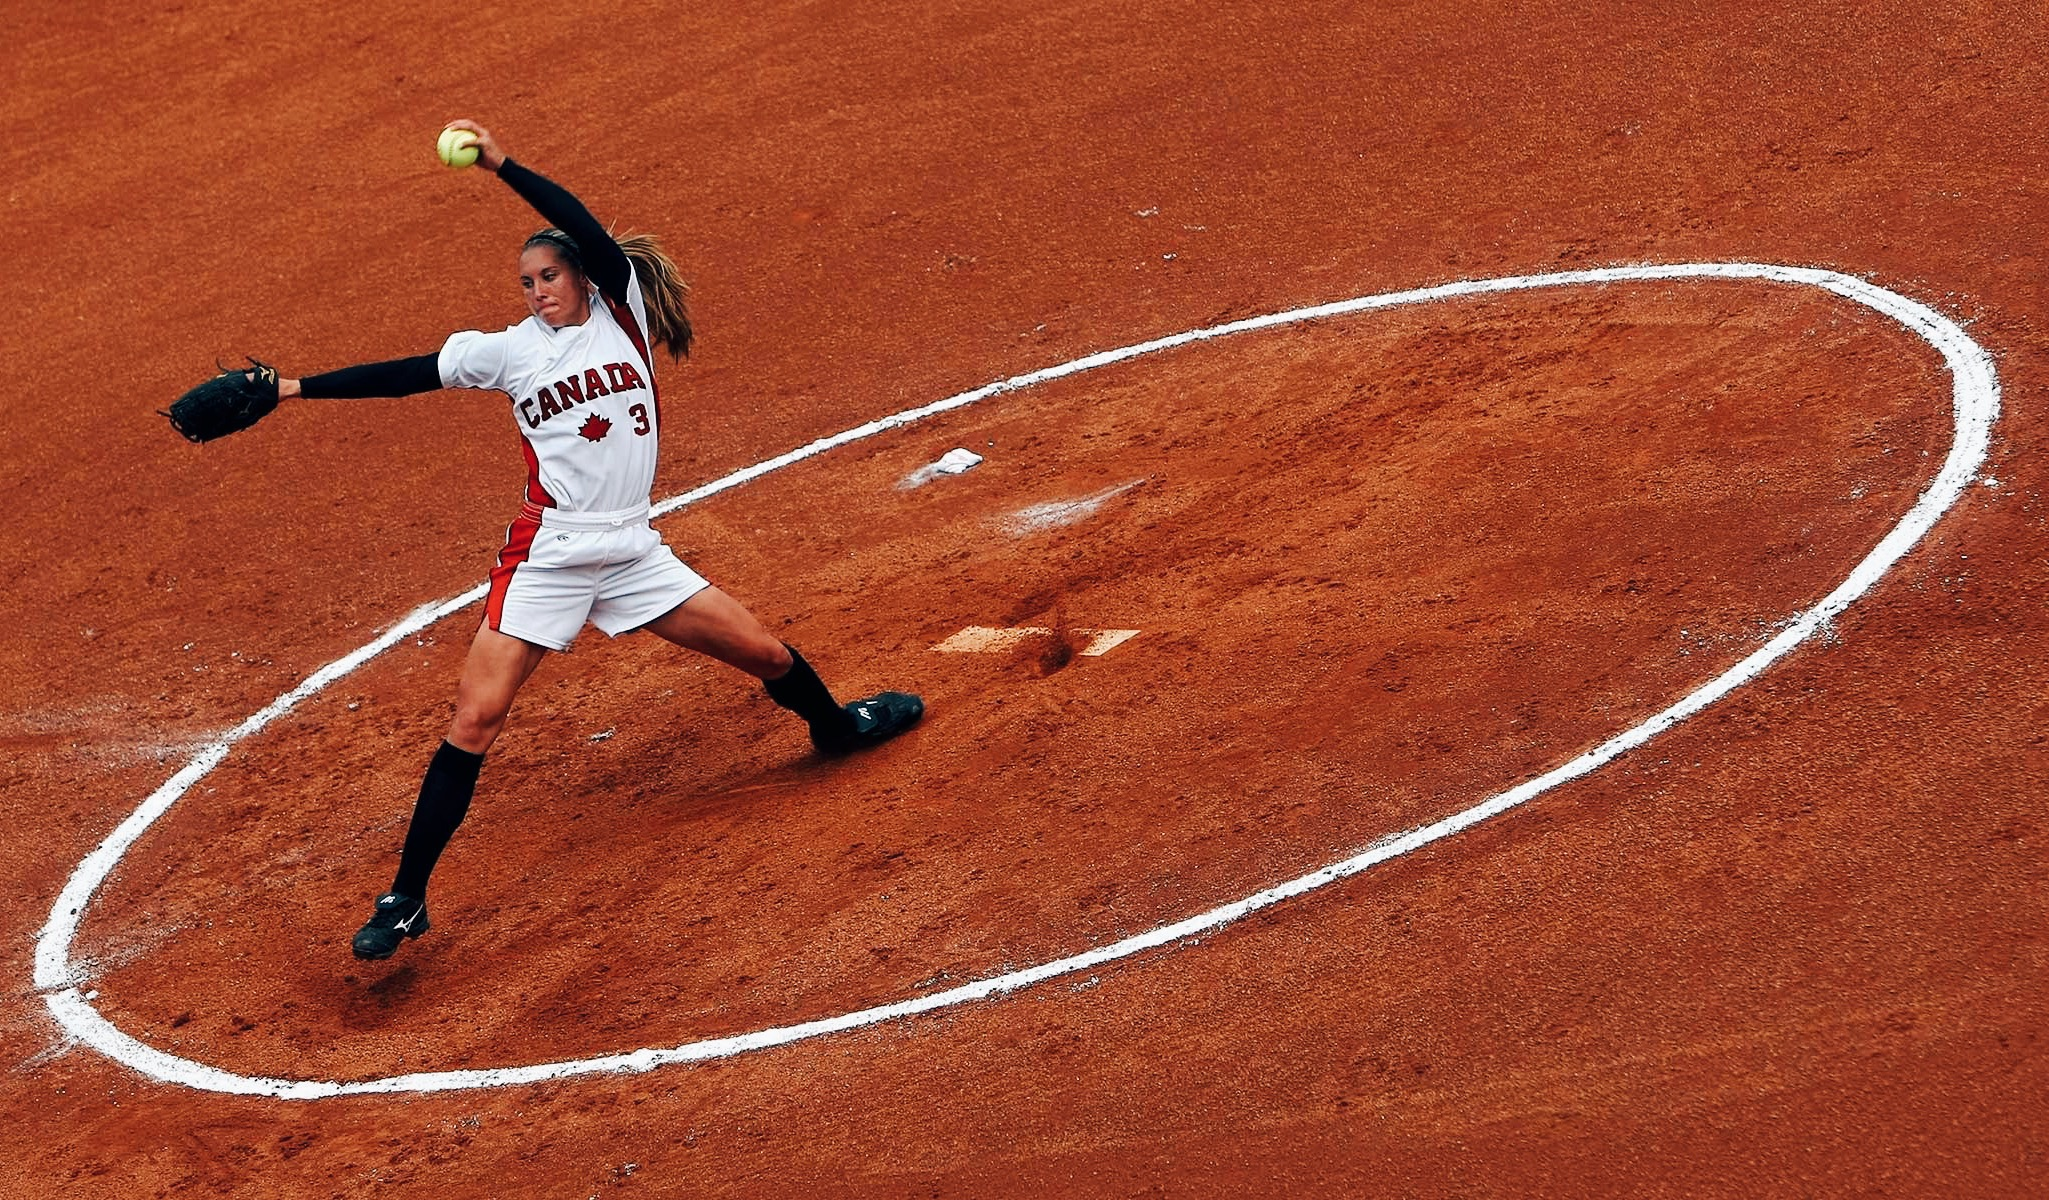 softball-women-in-sport.jpg